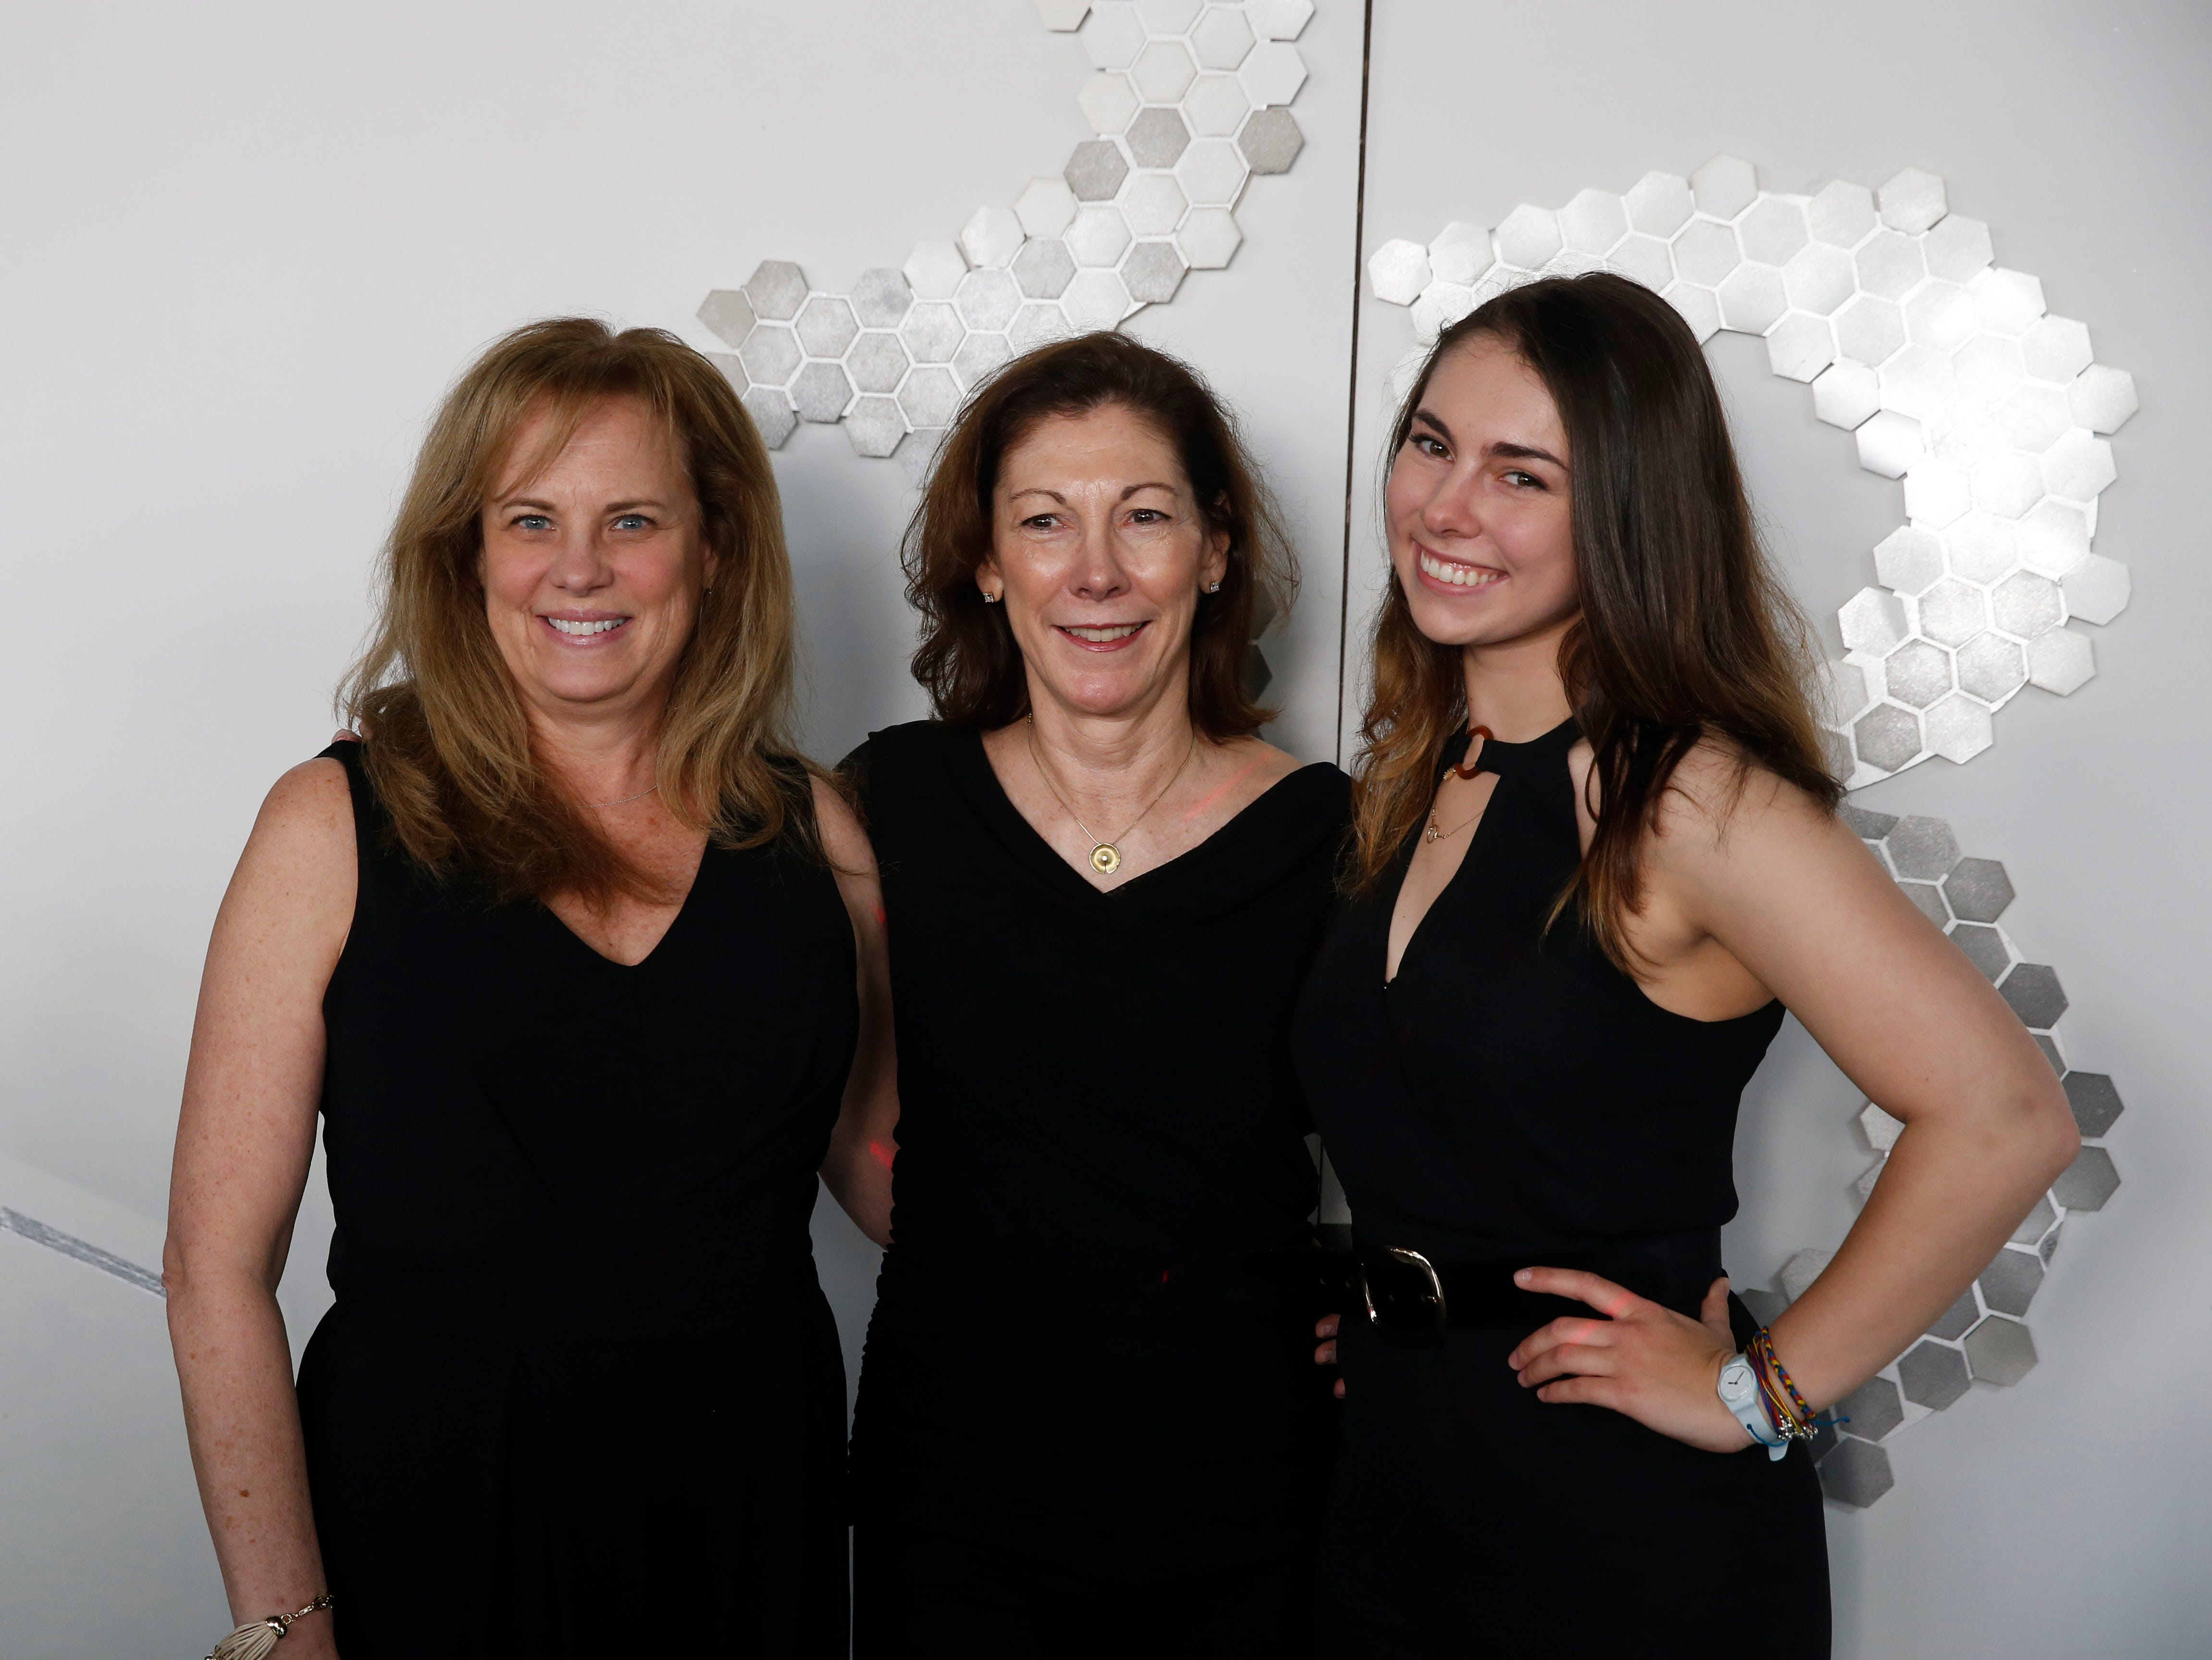 From left, Susan Kretz of Newtown, Connecticut, Susan Moody of Hoboken, New Jersey and her daughter Katie Moody a Marist College Fashion Department freshman pose for a photo at the step and repeat before the 33rd Marist College Silver Needle Runway Show on May 10, 2019.